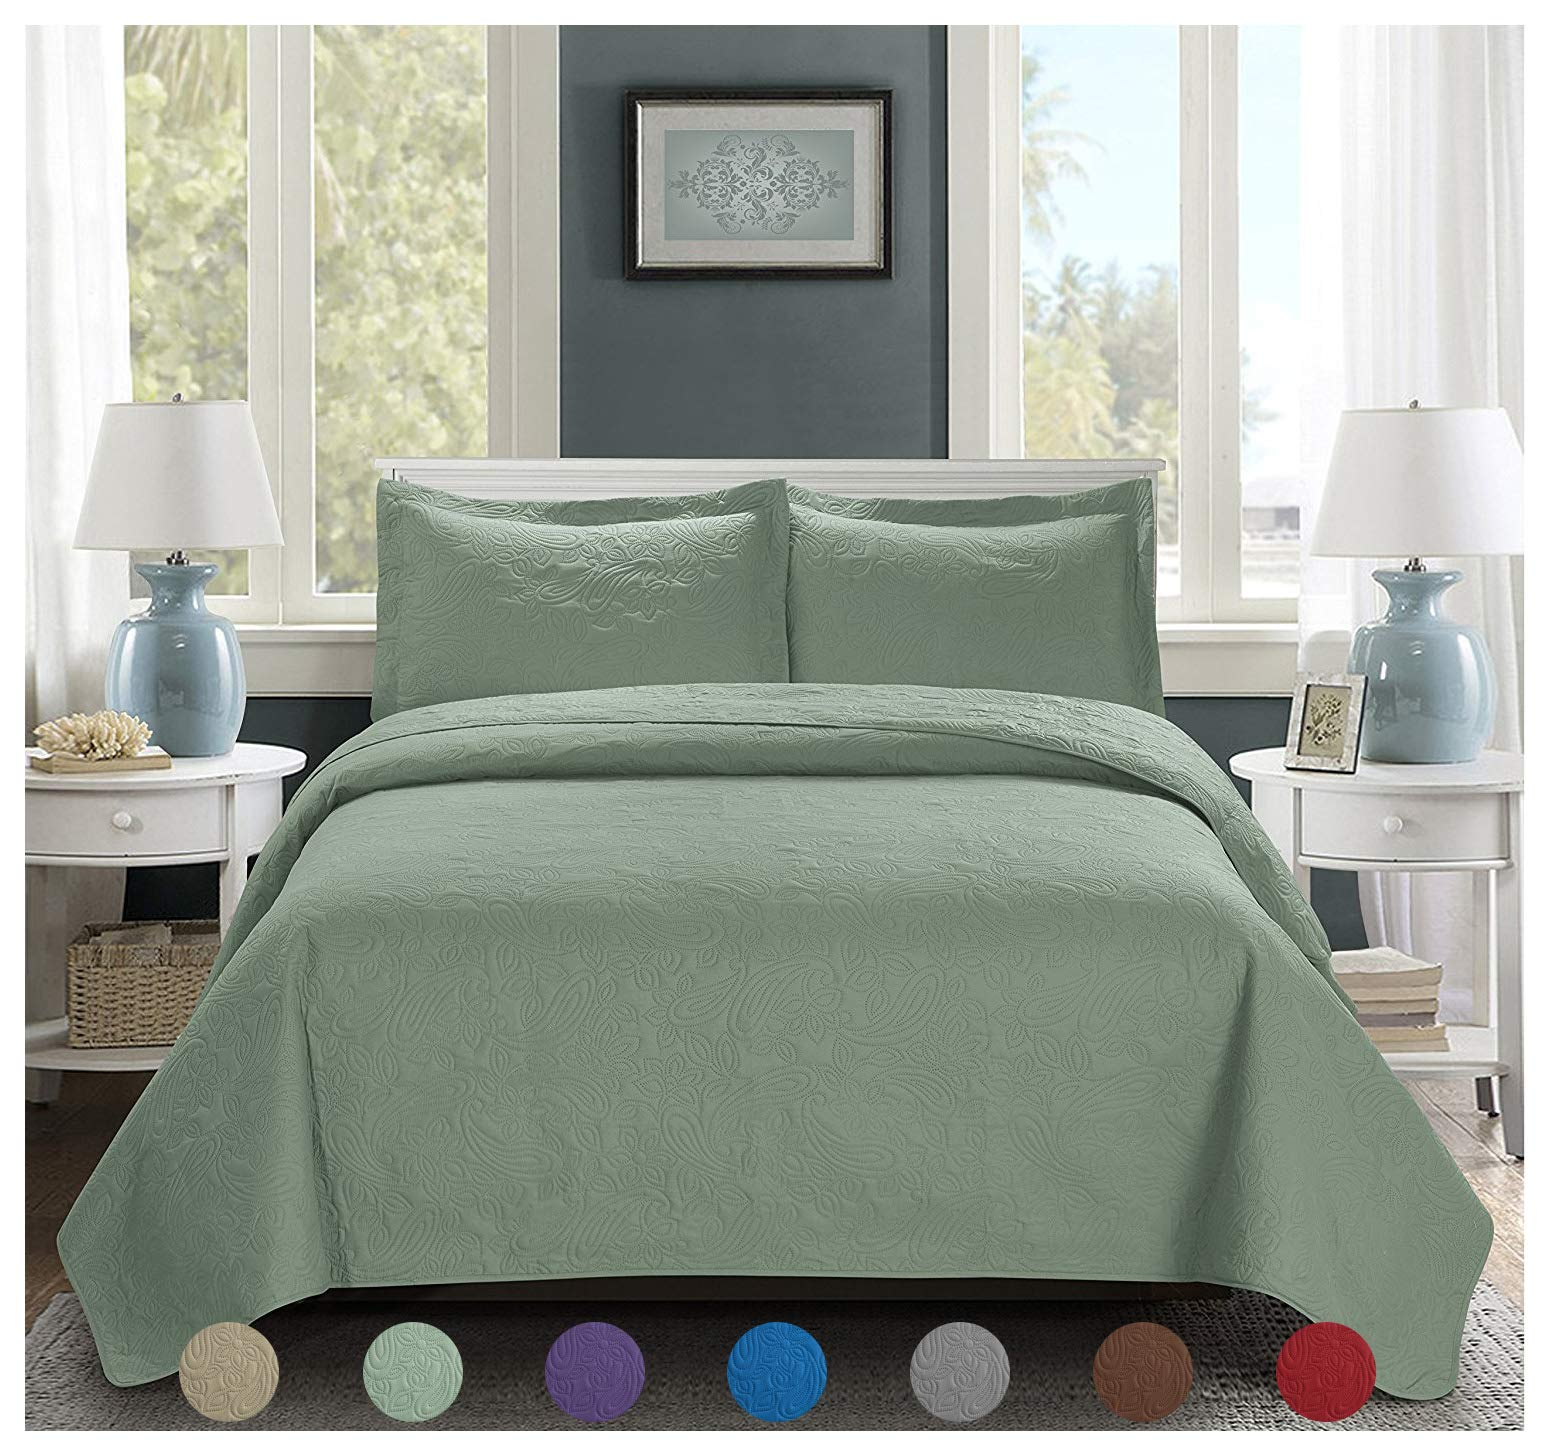 3 Piece Premium Comfy Embossed Bedspread Set,Oversized Ultrasonic Thermal Pressing Embossed Coverlet Set,Moderate Weight Bed Spread,MIKANOS(King,Sage)